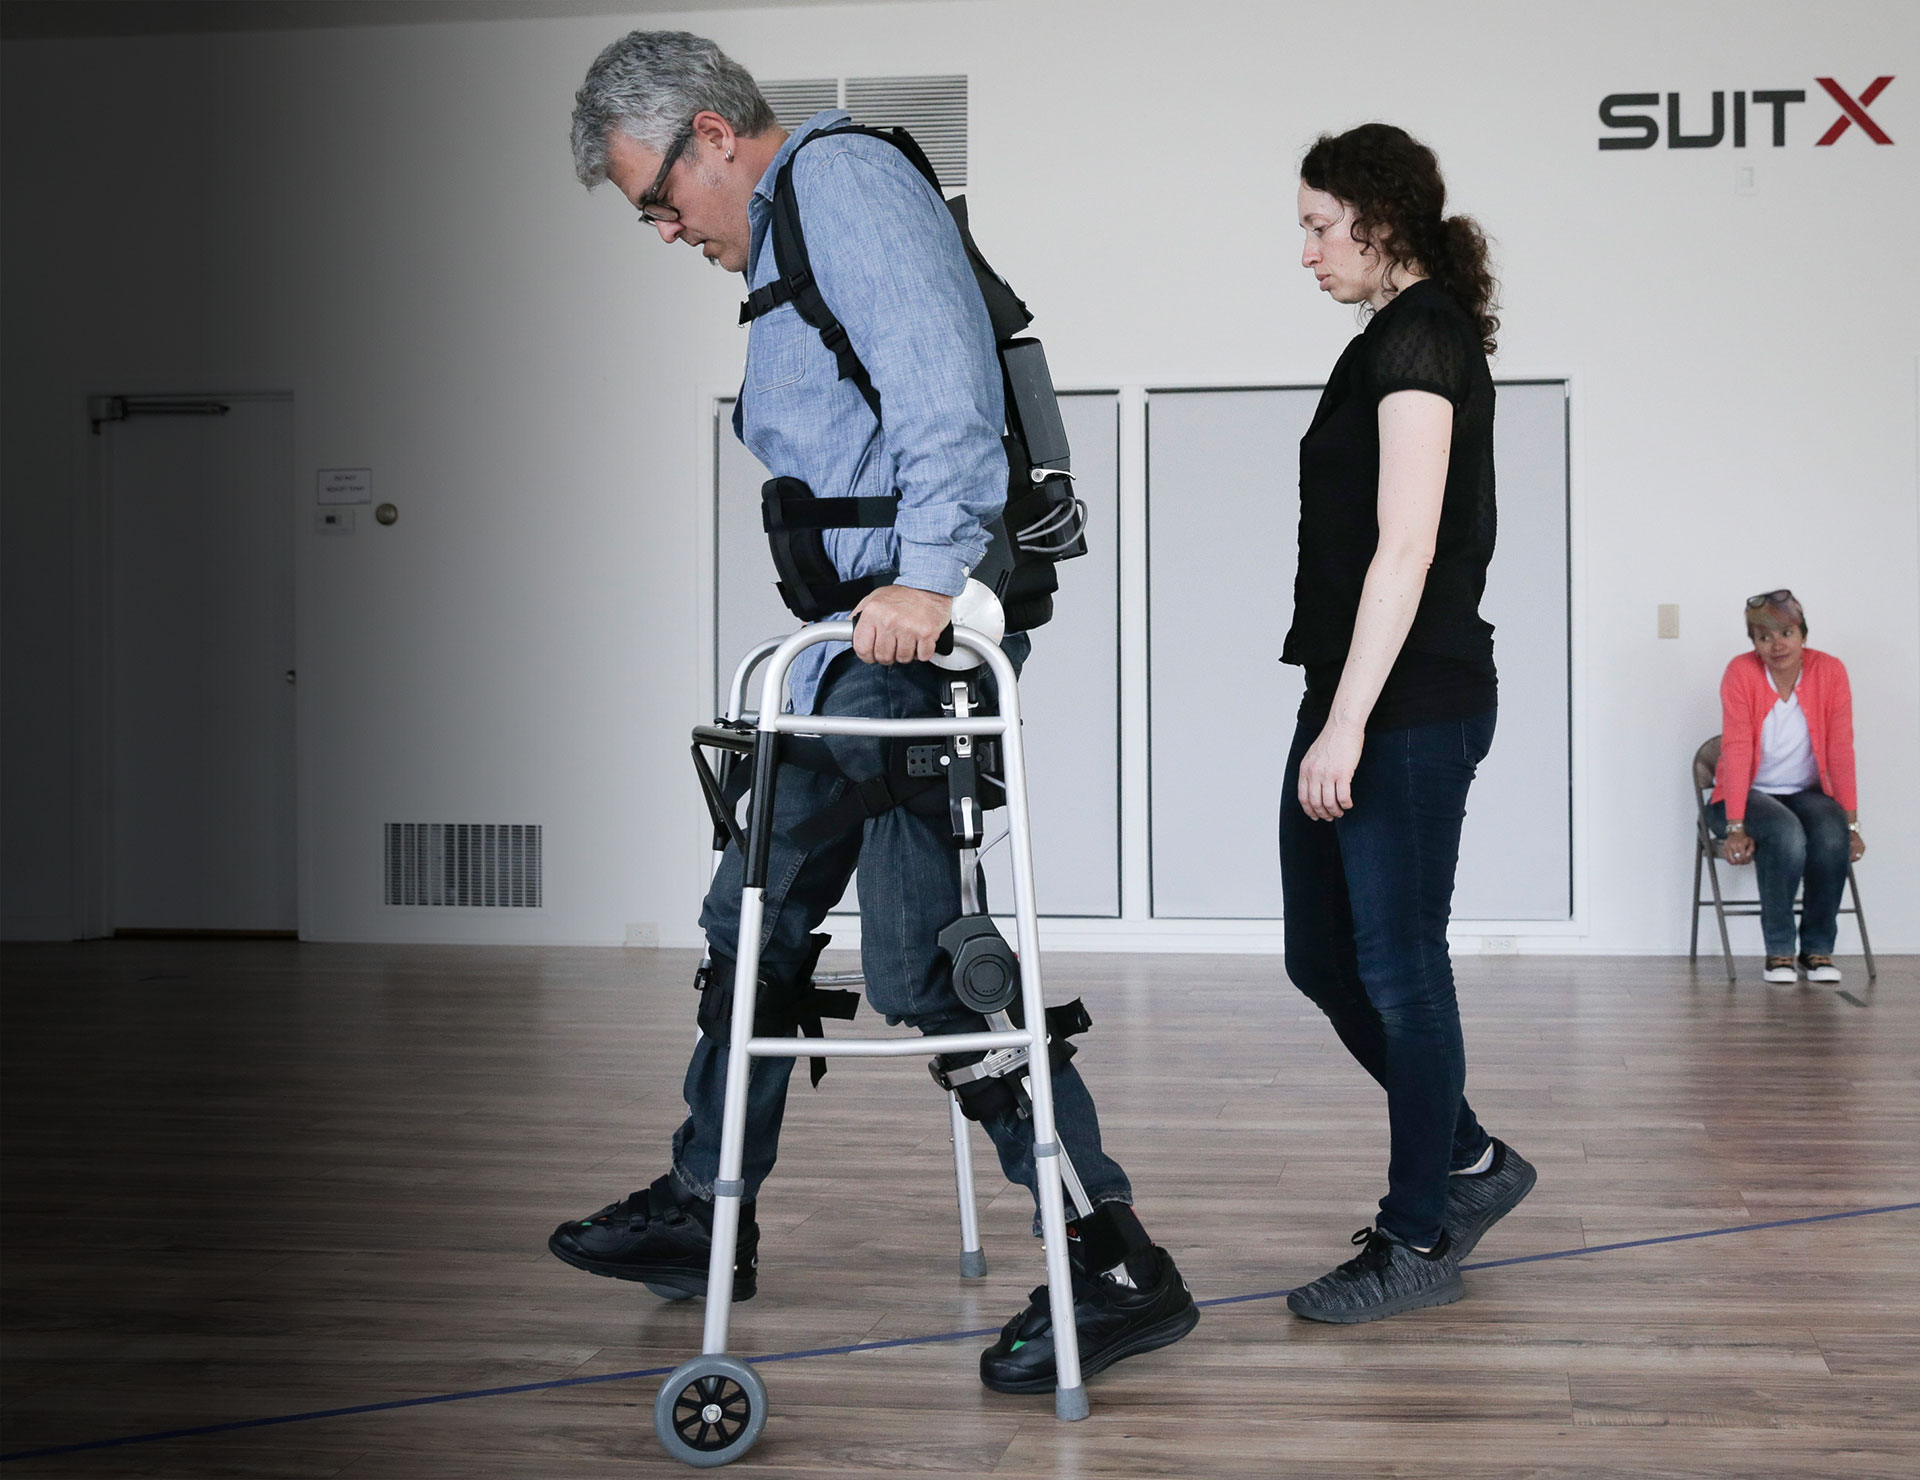 Discussion on this topic: Exoskeleton Gives New Hope to Paraplegics, exoskeleton-gives-new-hope-to-paraplegics/